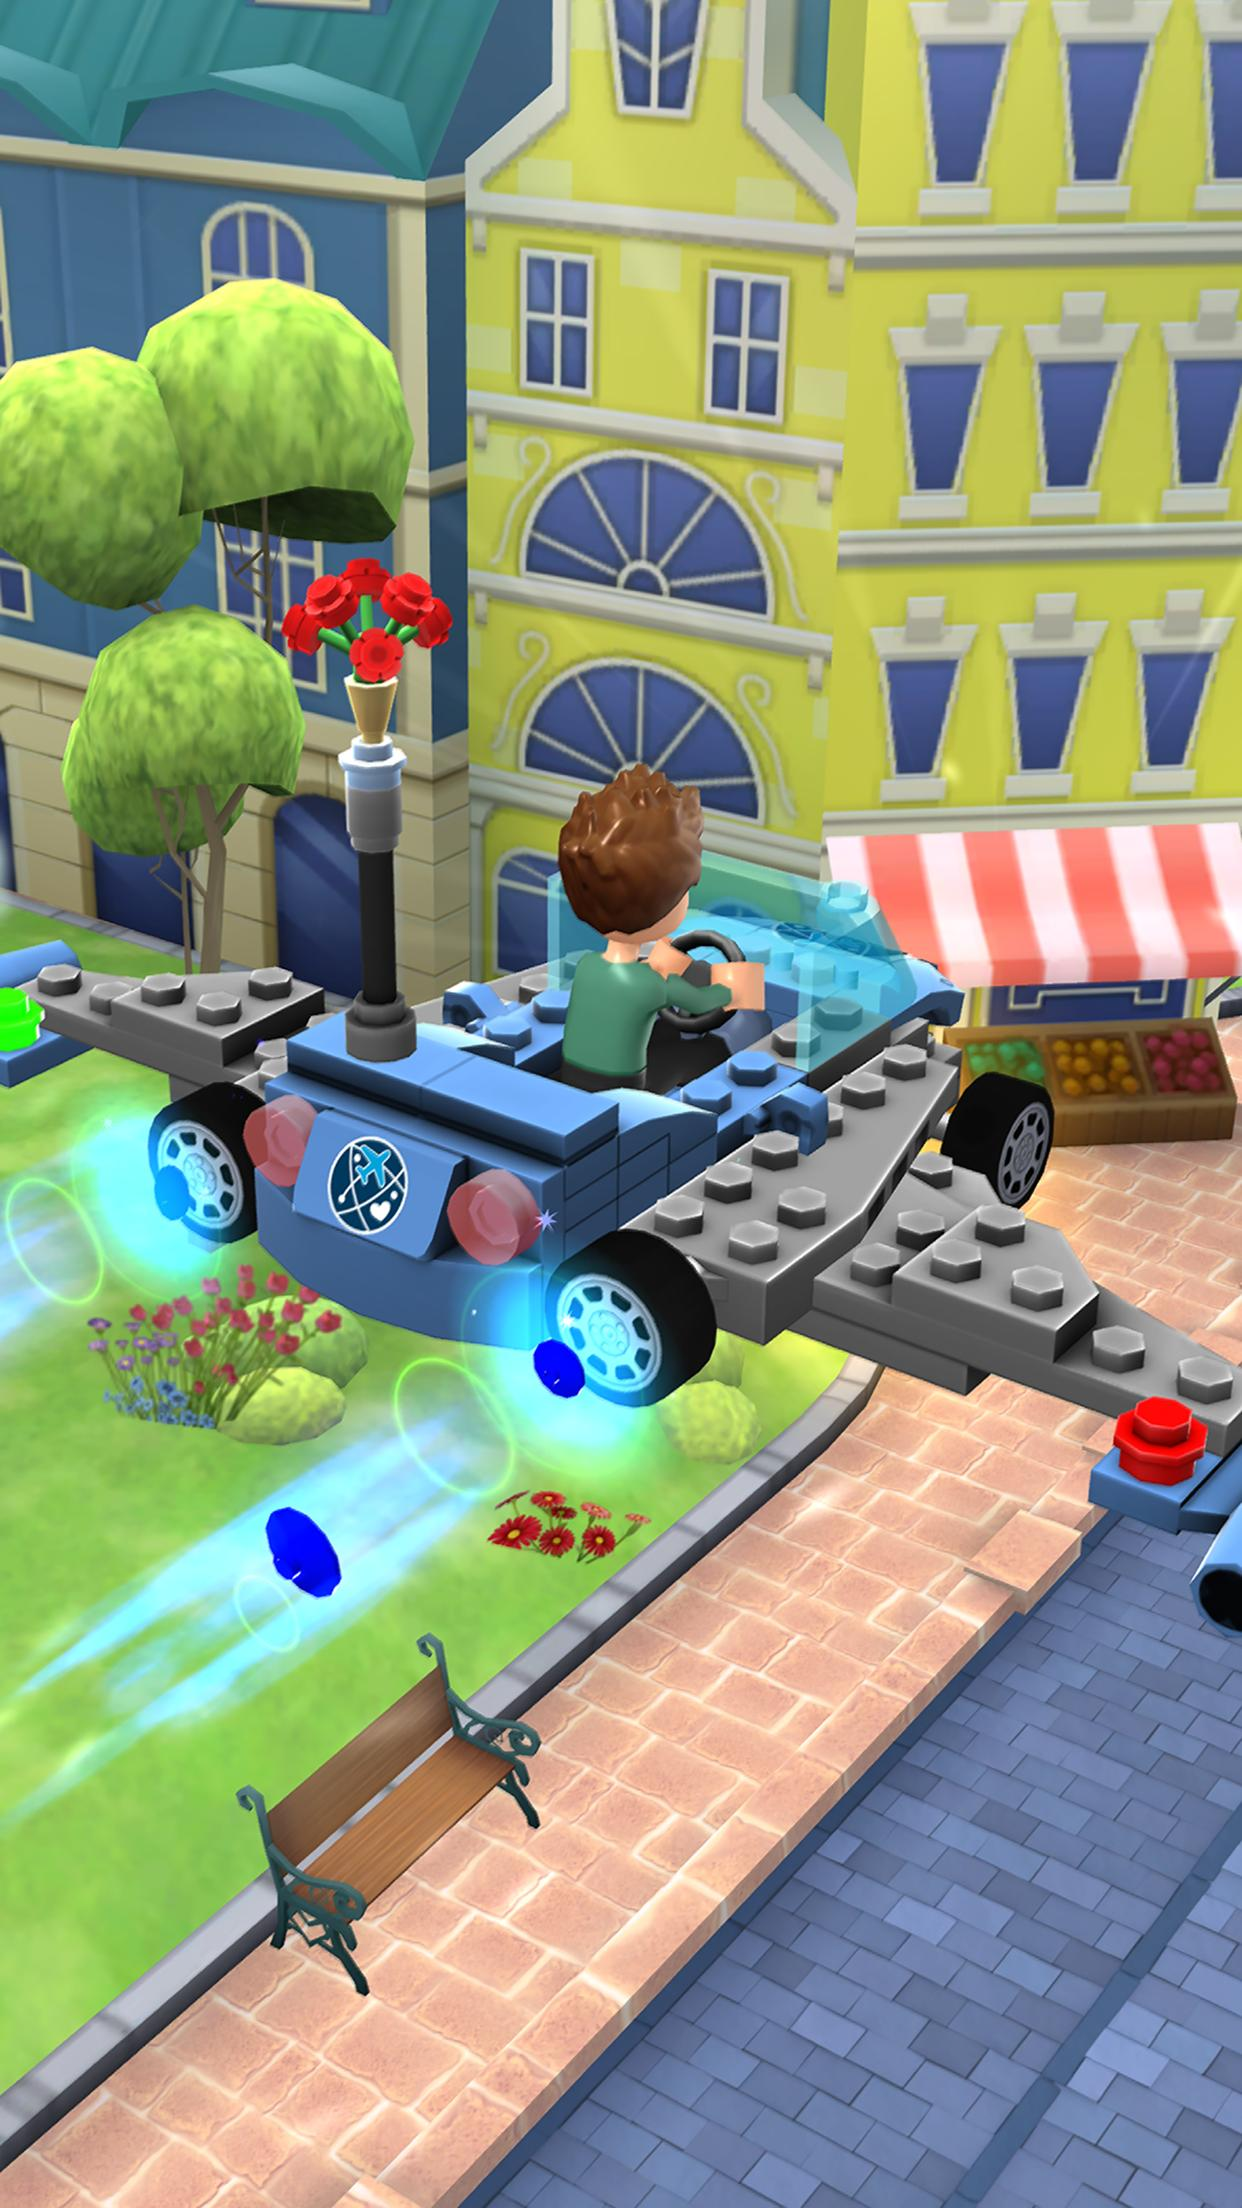 LEGO® Friends: Heartlake Rush 1.4.0 Screenshot 8